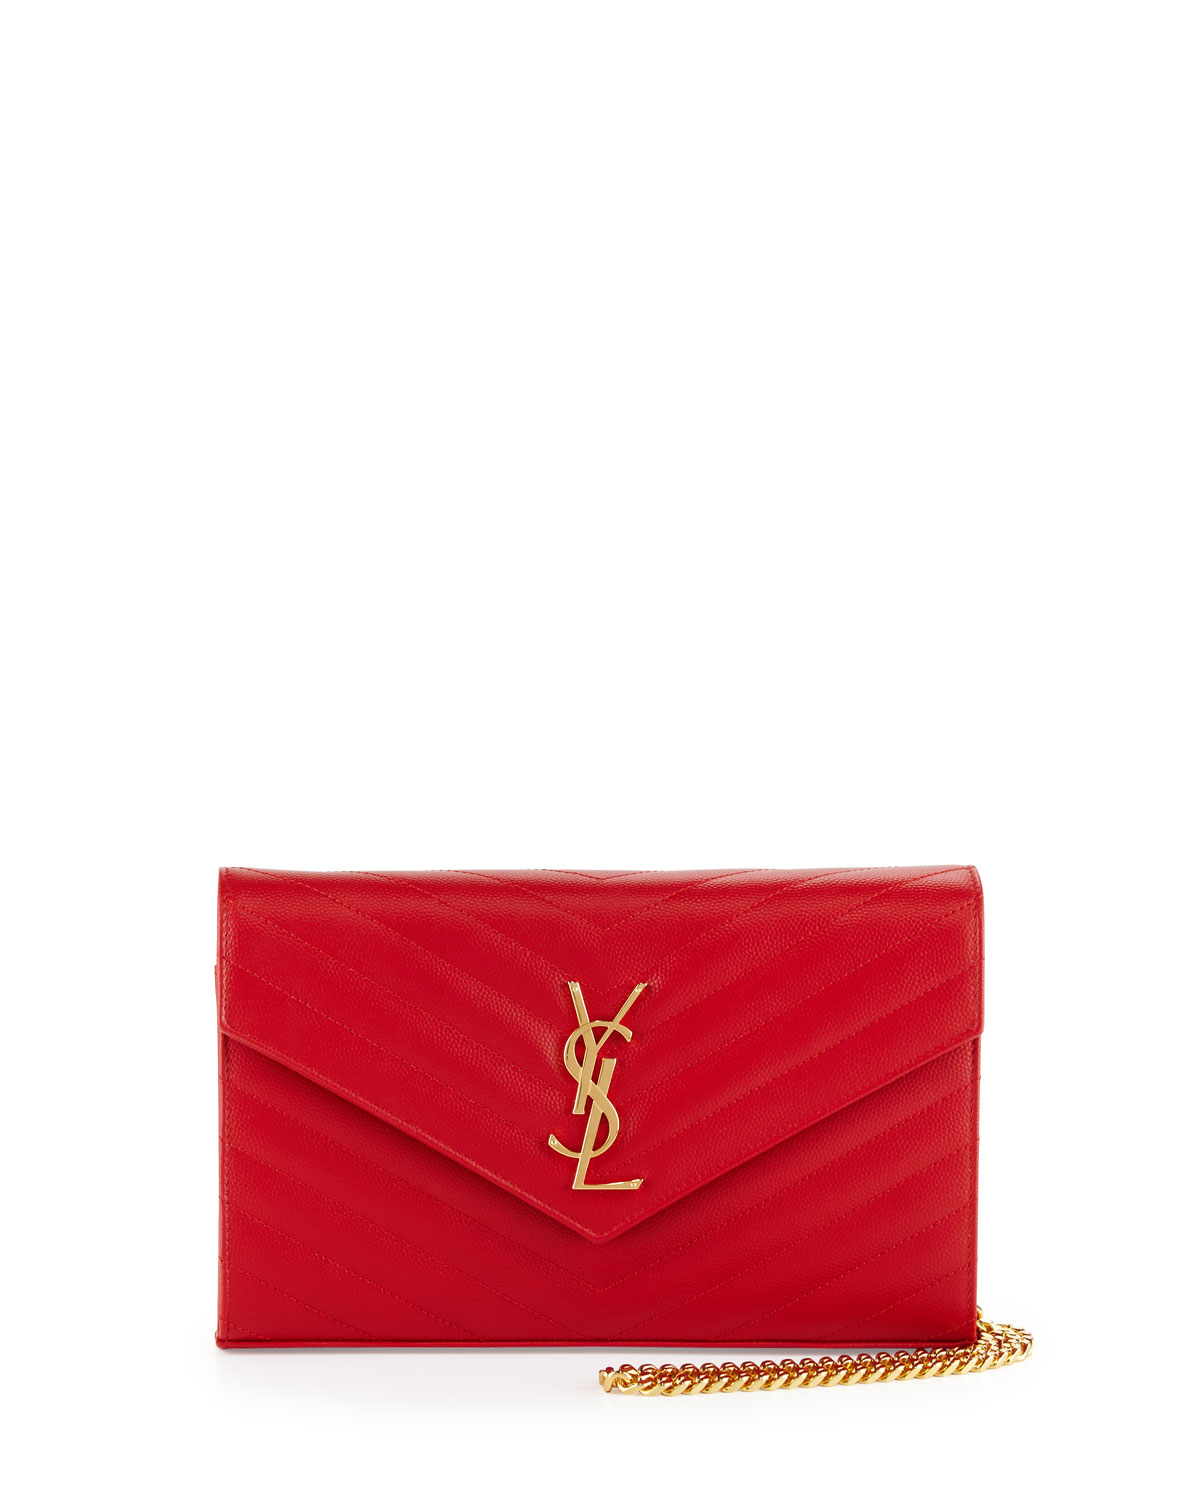 Monogram Matelasse Wallet-on-Chain, Red, Women's - Saint Laurent